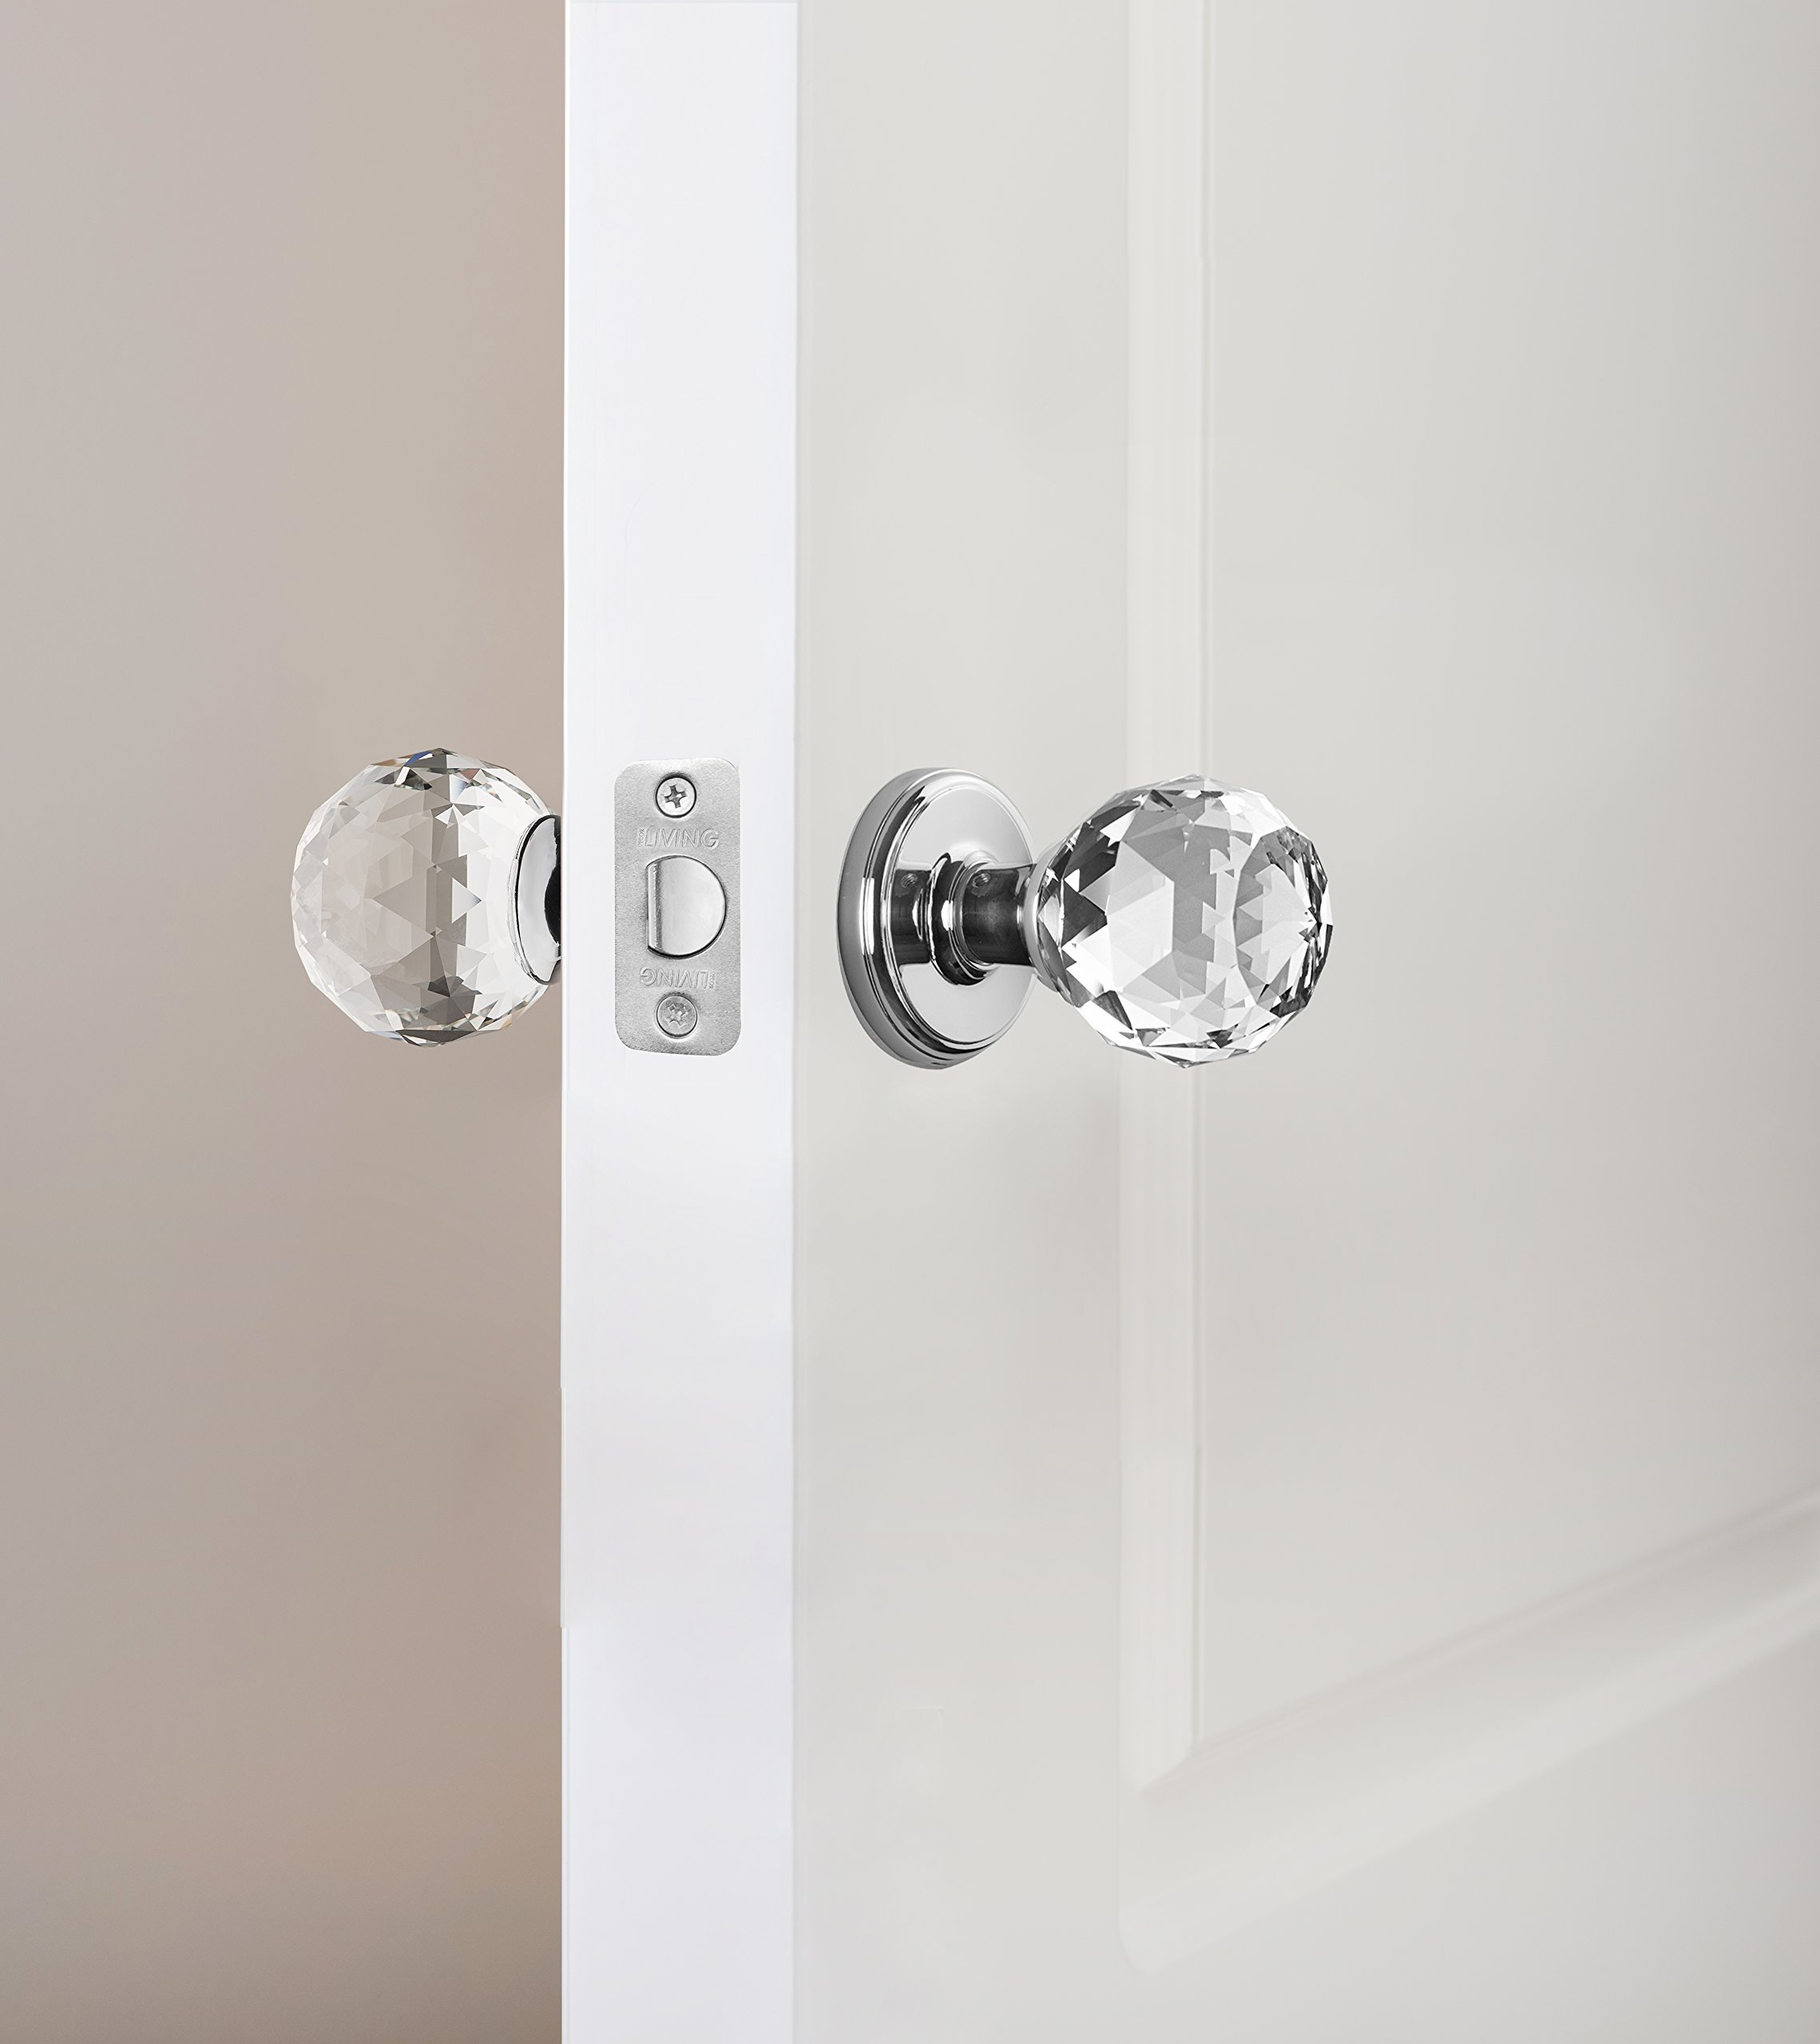 Decor Living, AMG and Enchante Accessories Faceted Crystal Door Knobs with Lock, Privacy Function for Bed and Bath, IRIS Collection, Polished Chrome by DECOR LIVING (Image #8)